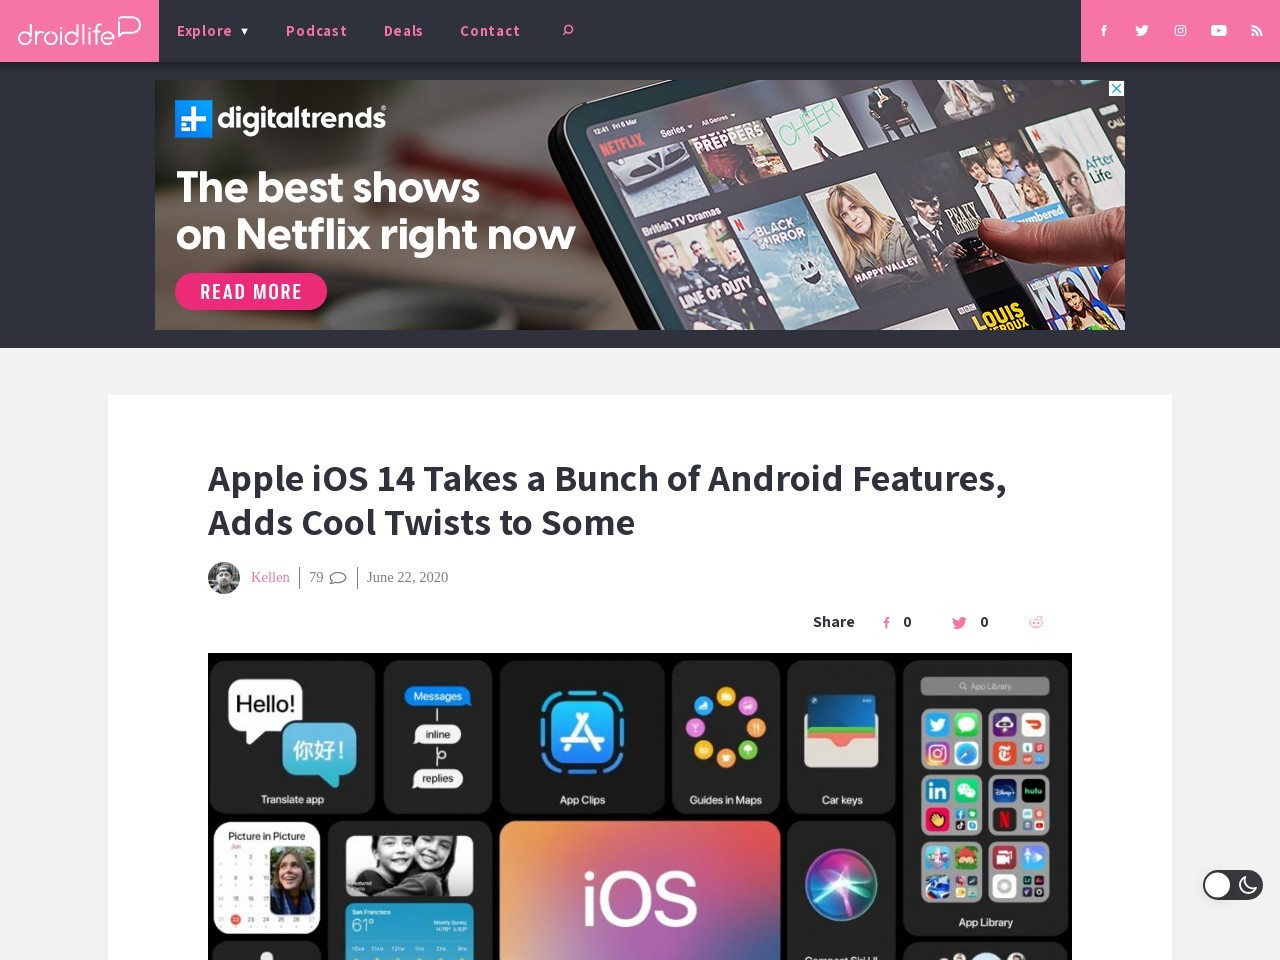 Apple iOS 14 Takes a Bunch of Android Features, Adds Cool Twists to Some